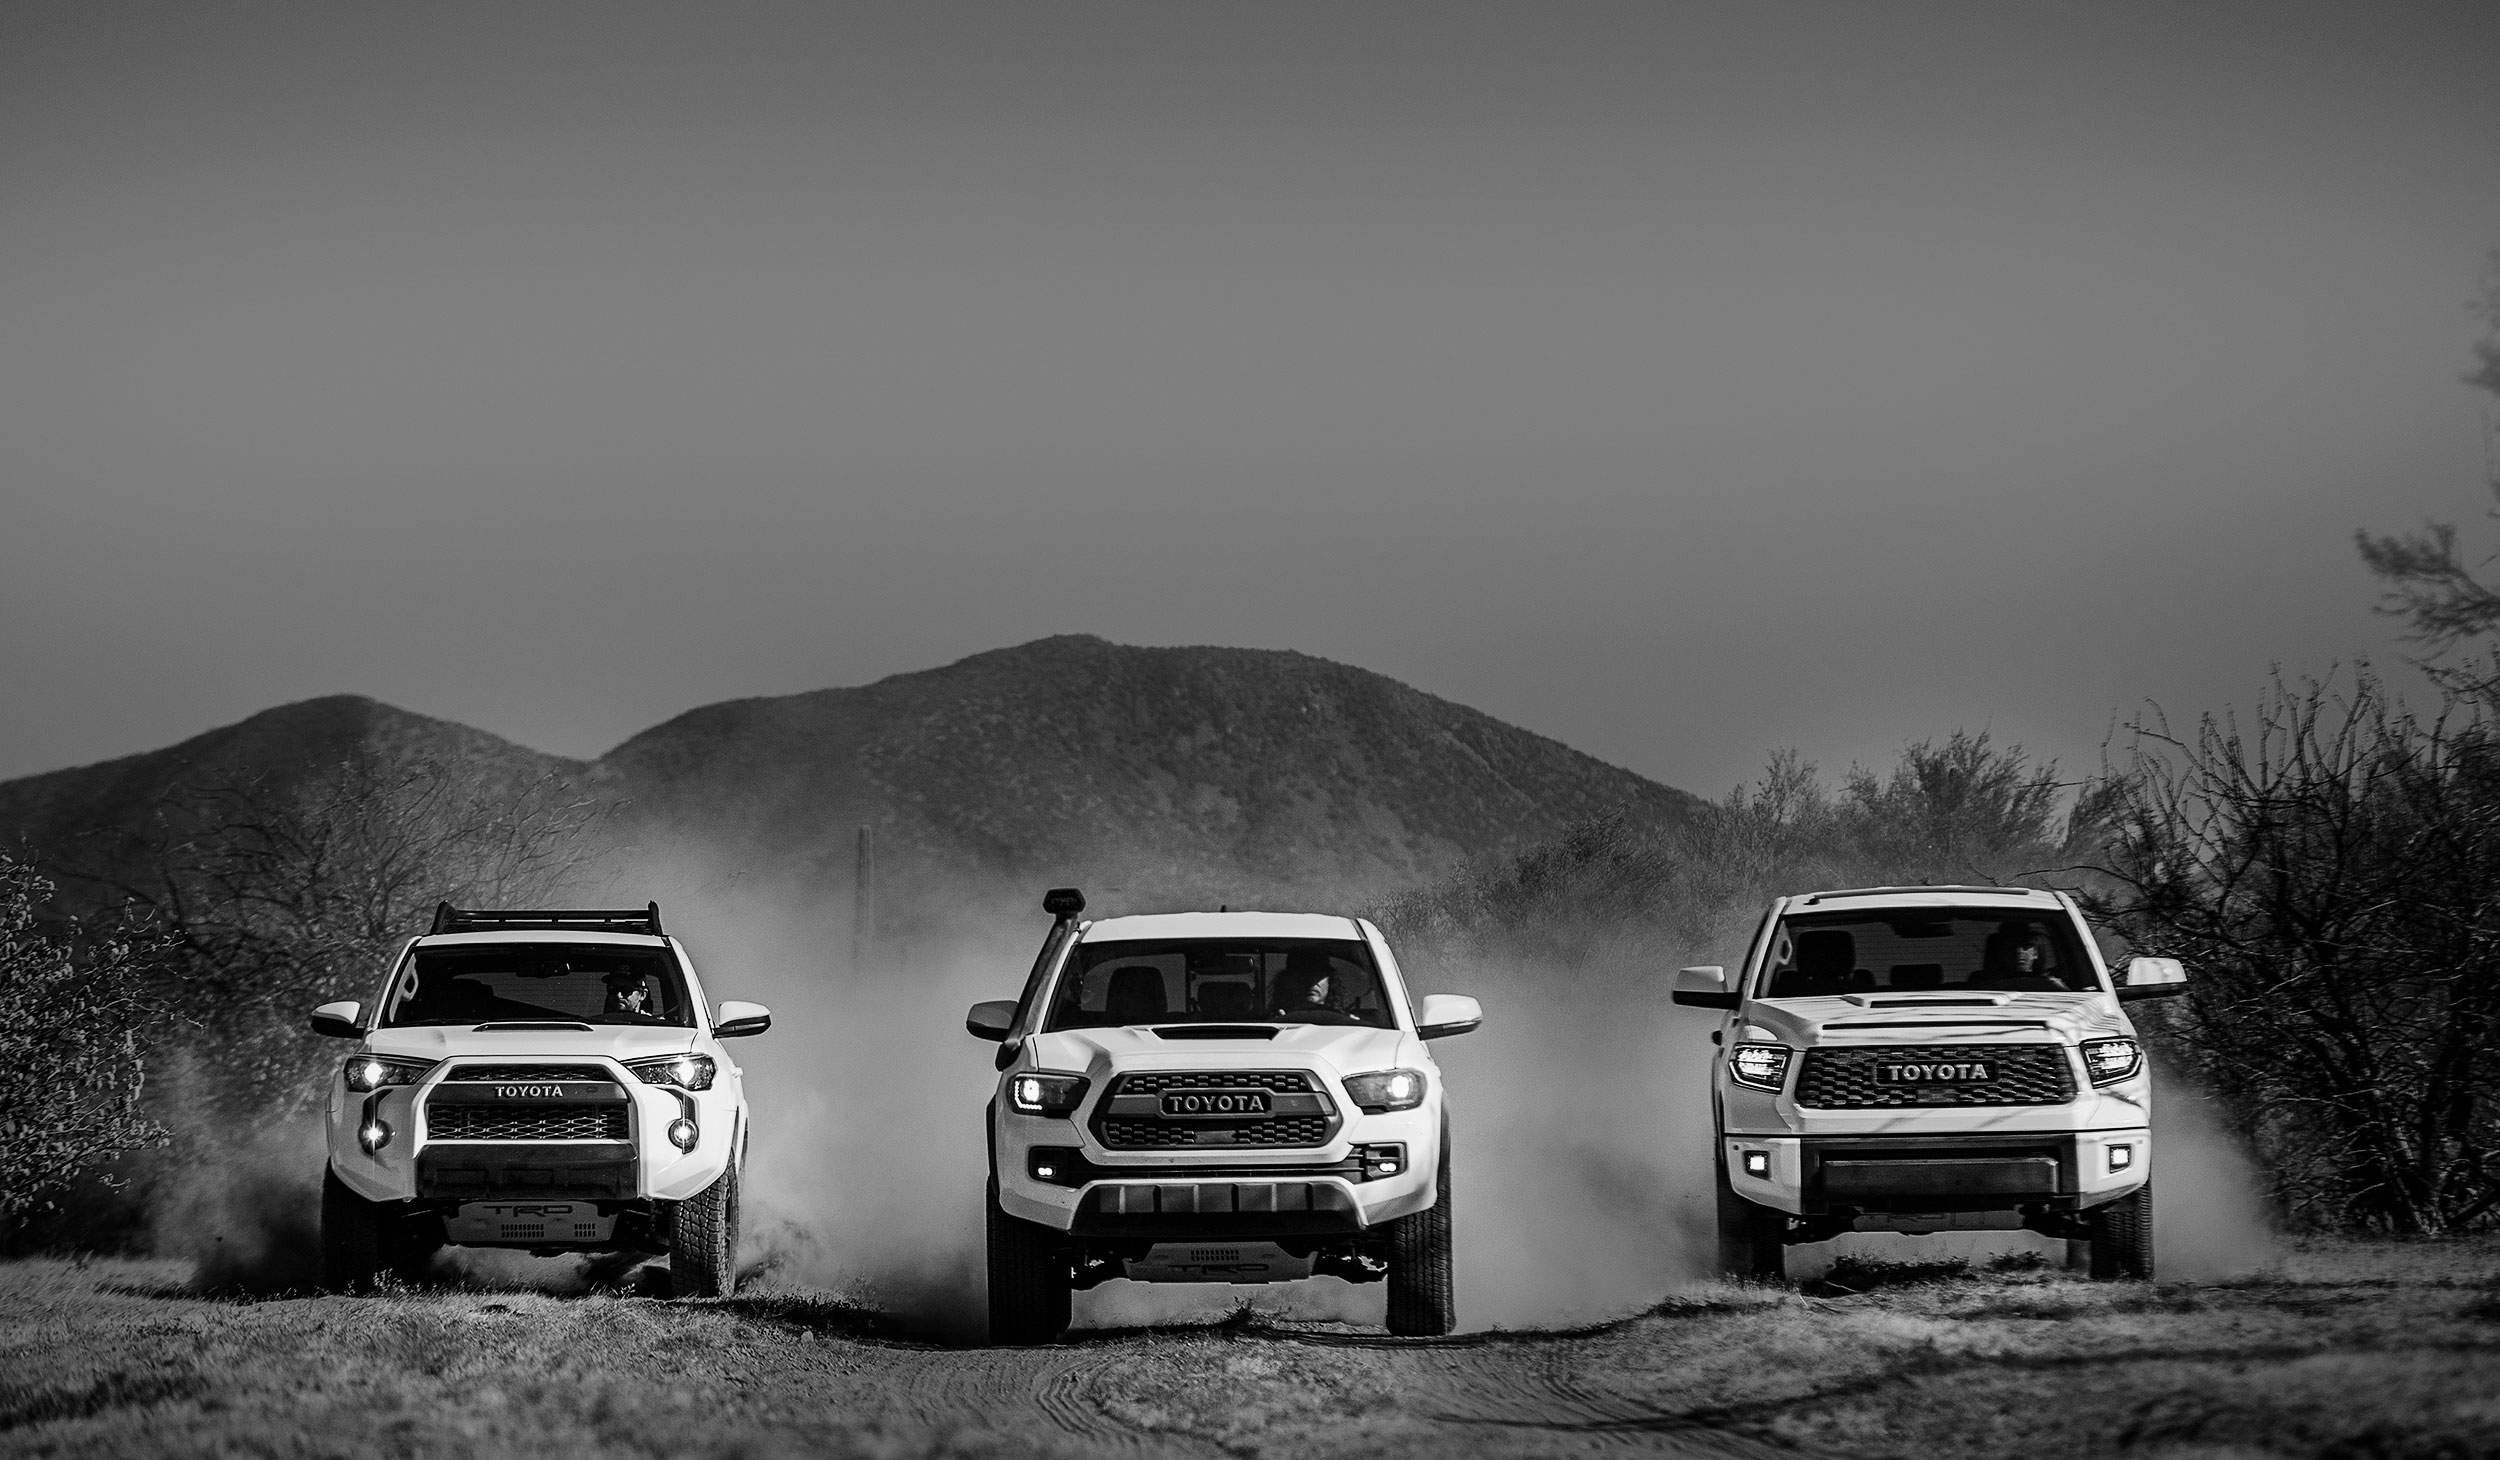 TRD Vehicles